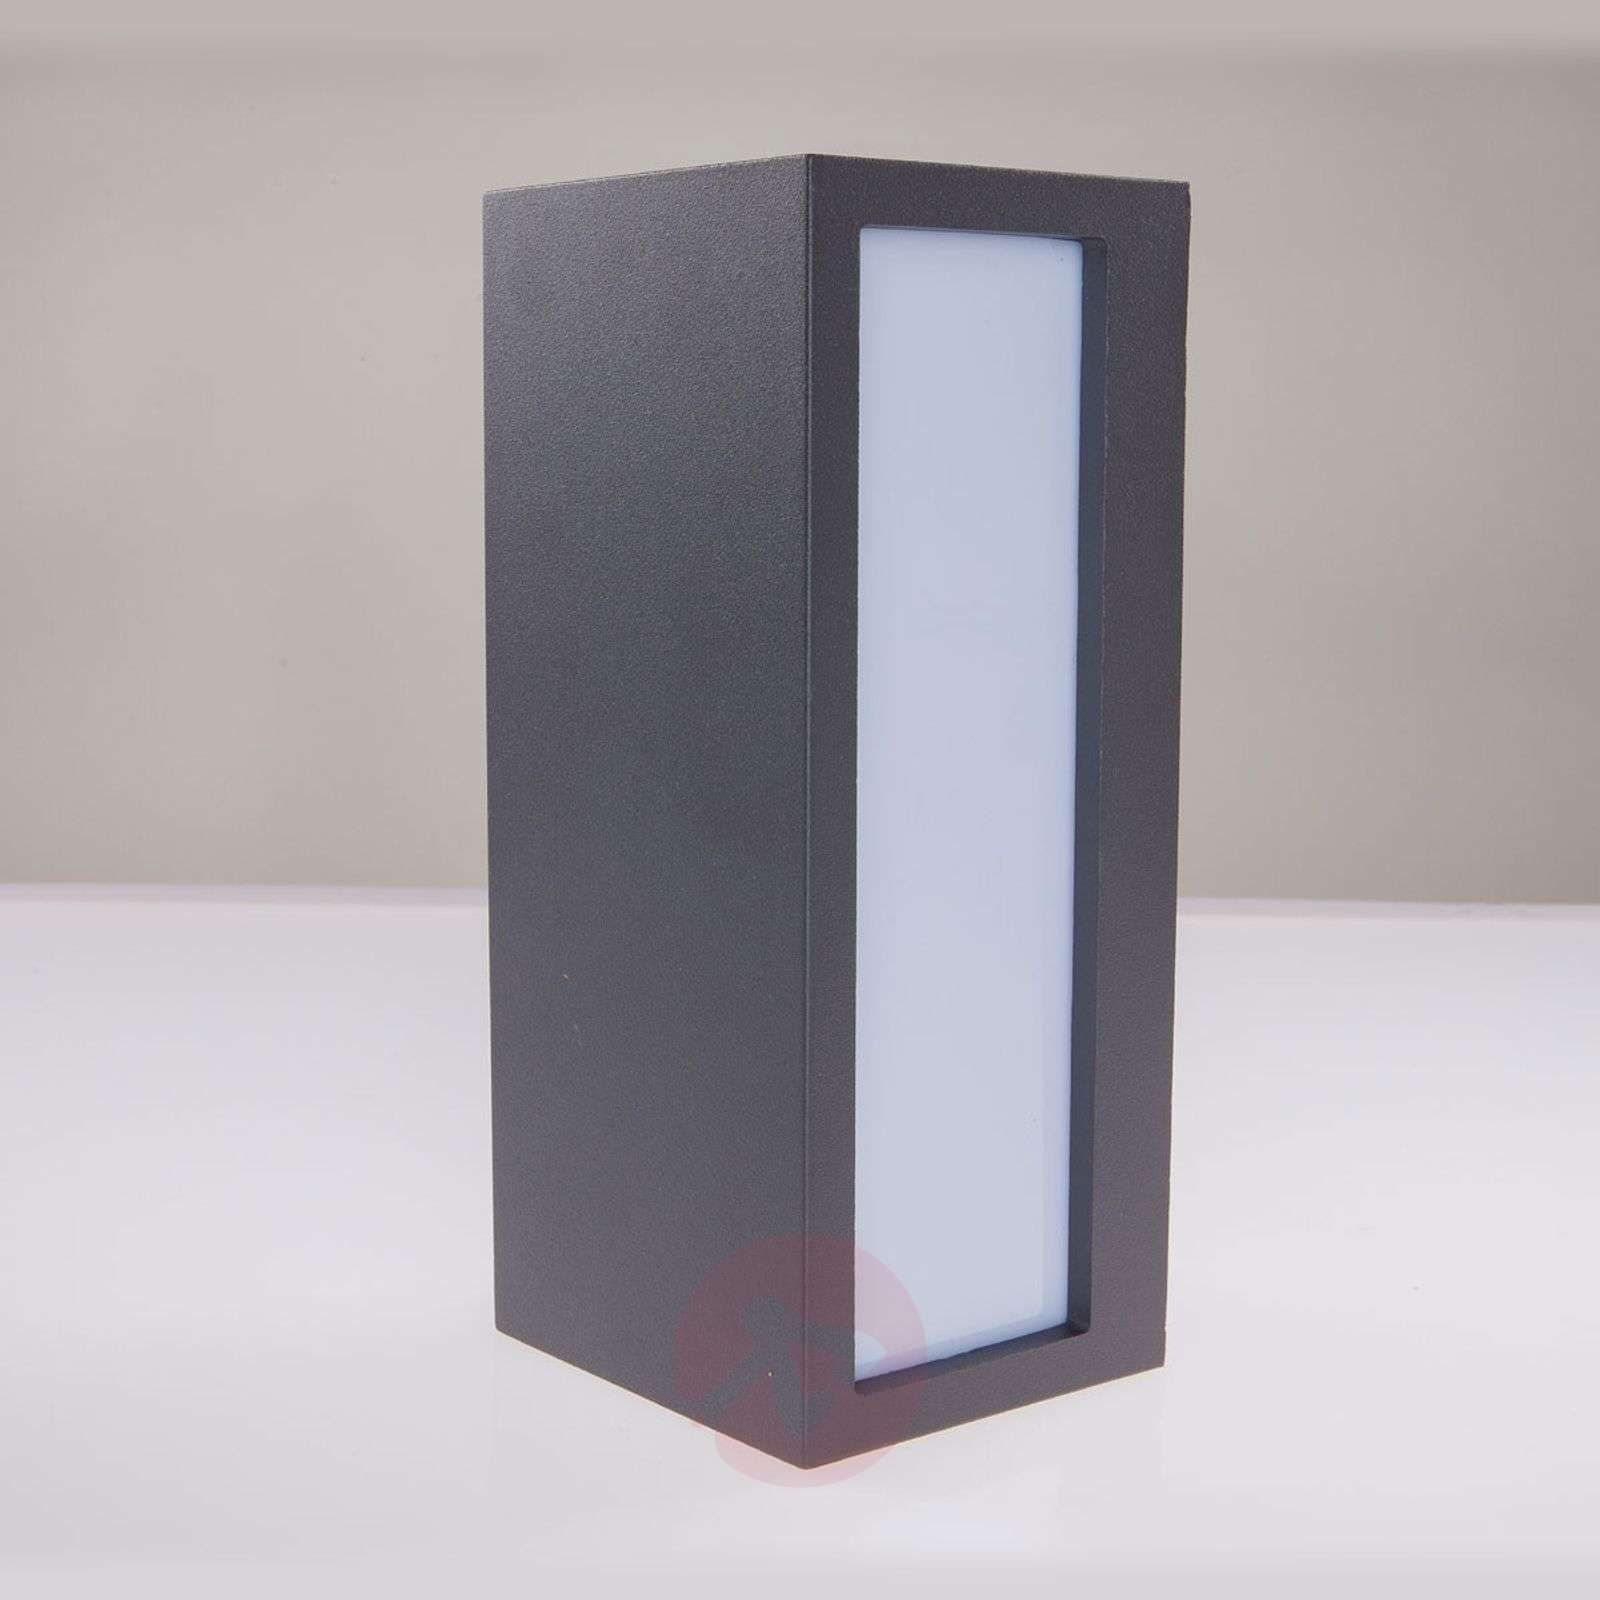 Wall Light Switch Remote Control : Bente - rectangular outdoor wall light, graphite Lights.co.uk